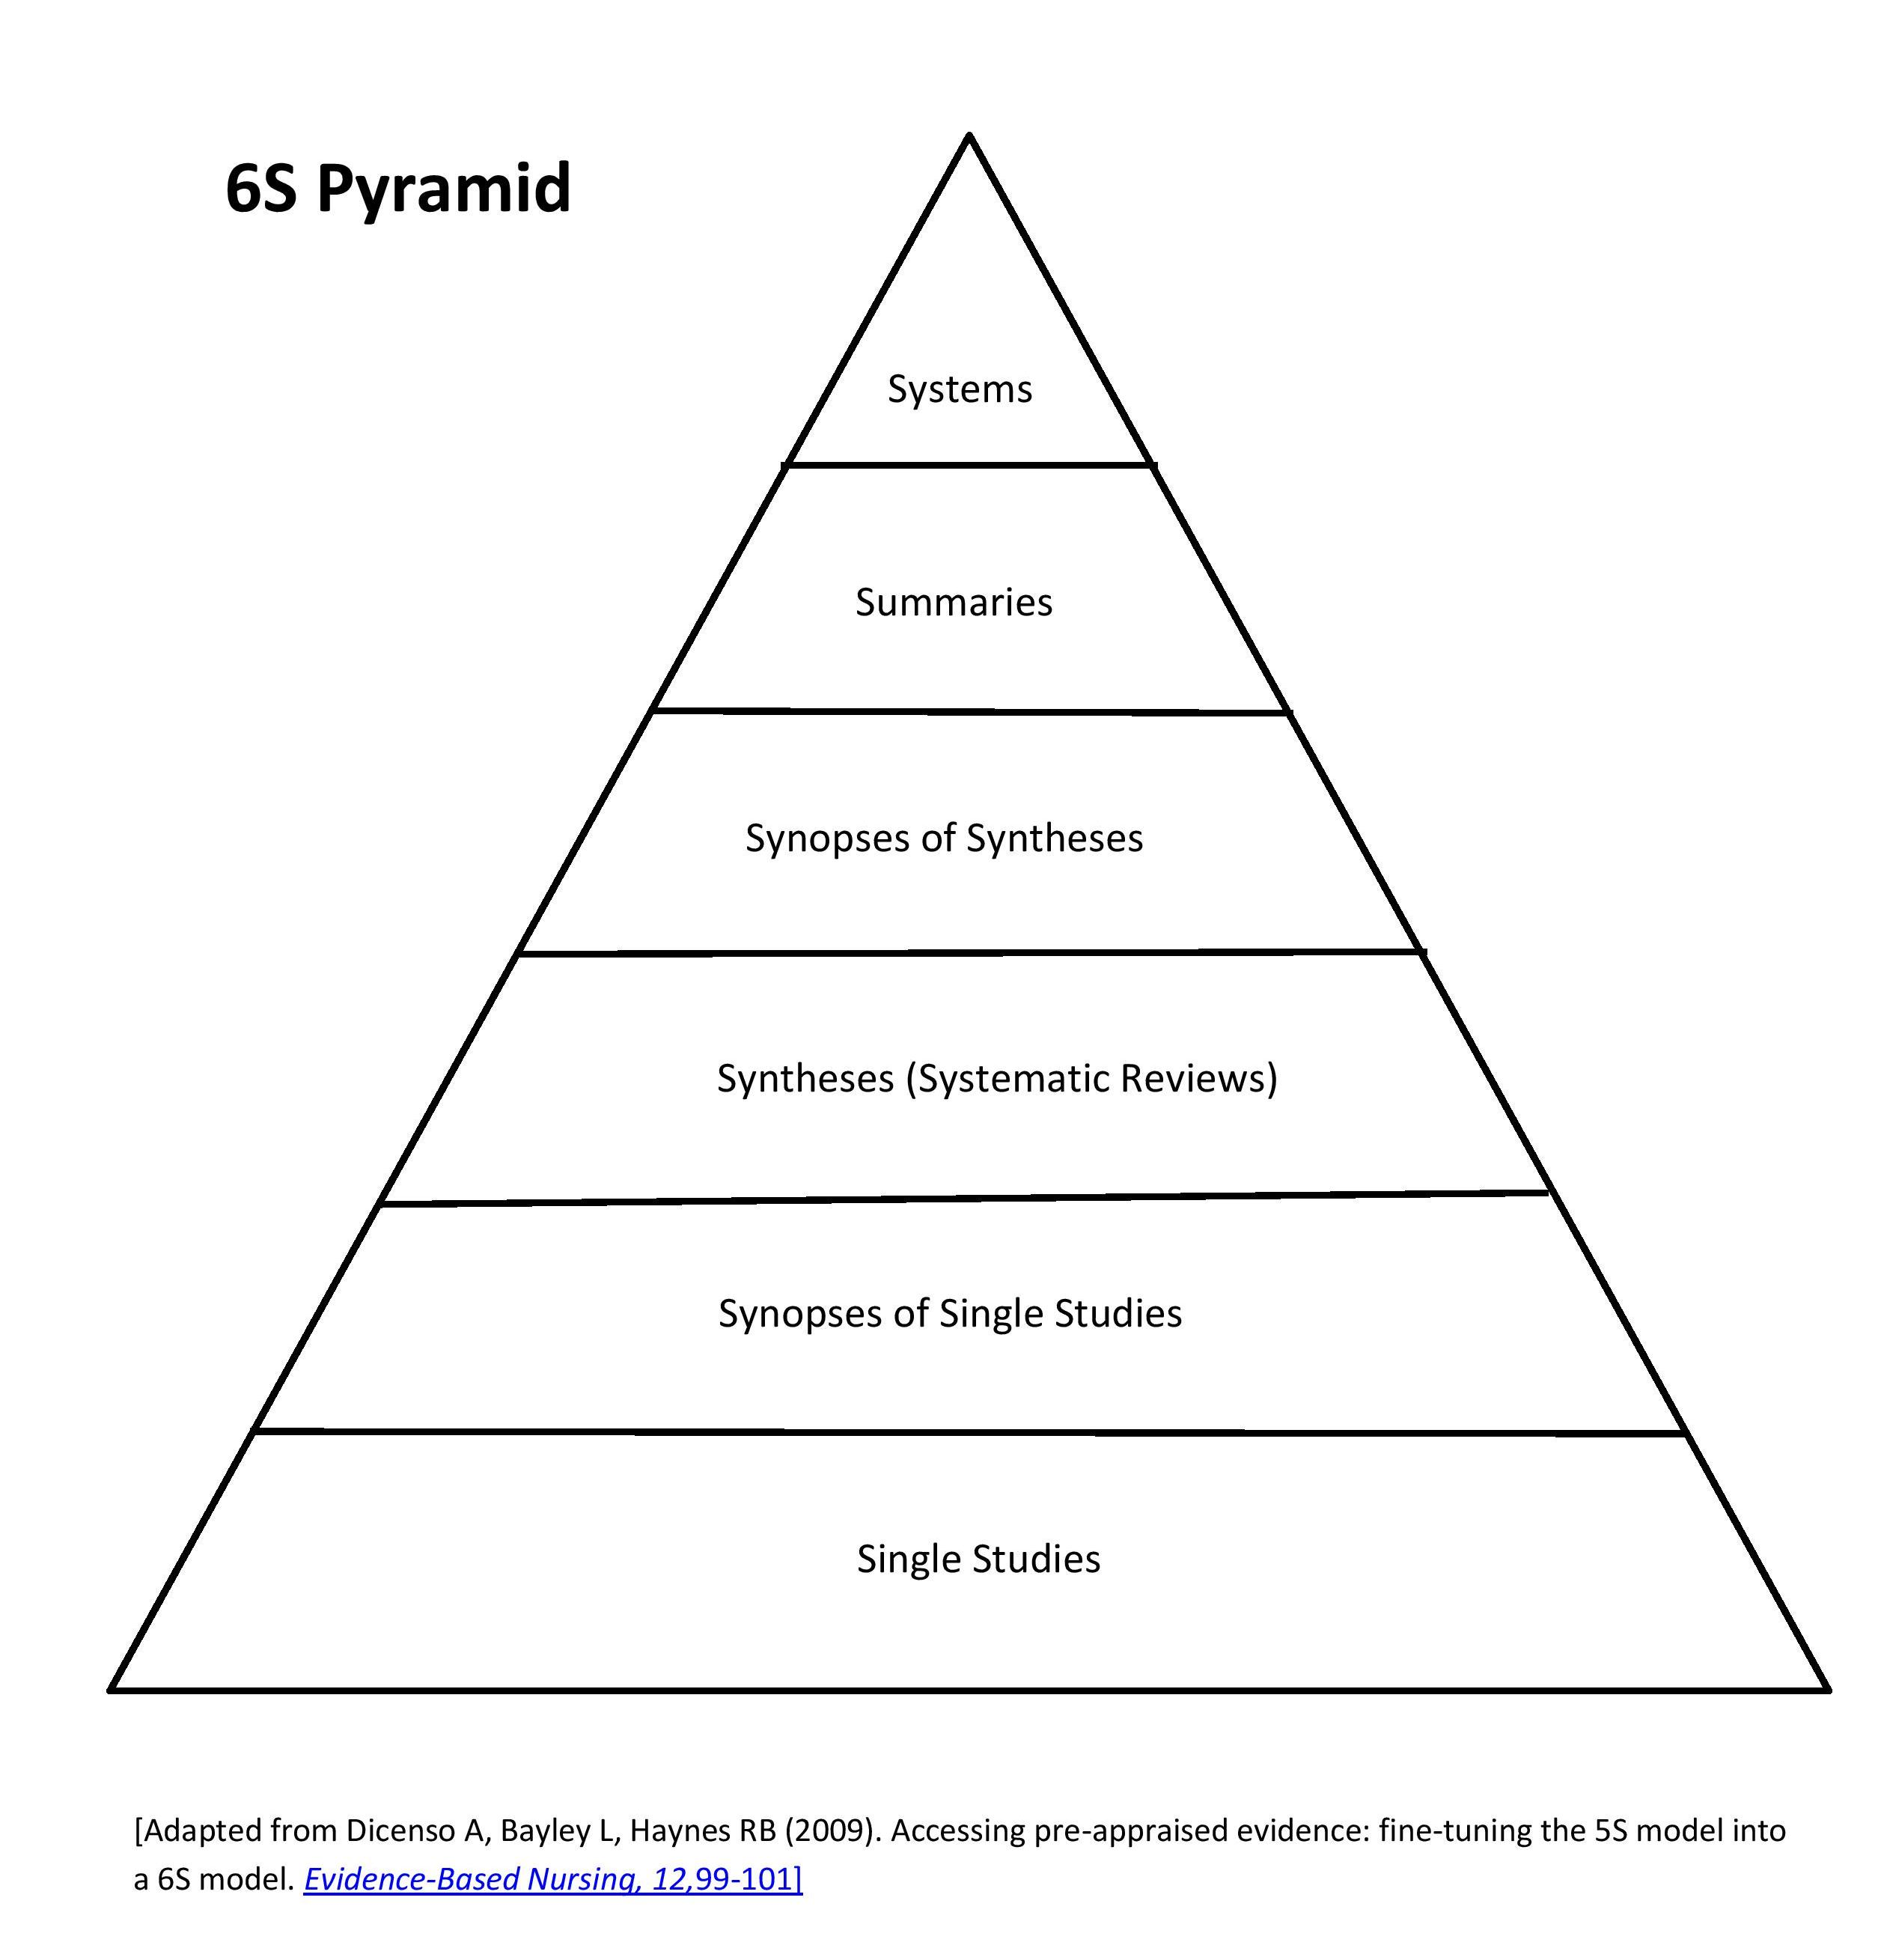 This image of the 6S Pyramid demonstrates the relationship of the resources in the hierarchy of pre-processed evidence.